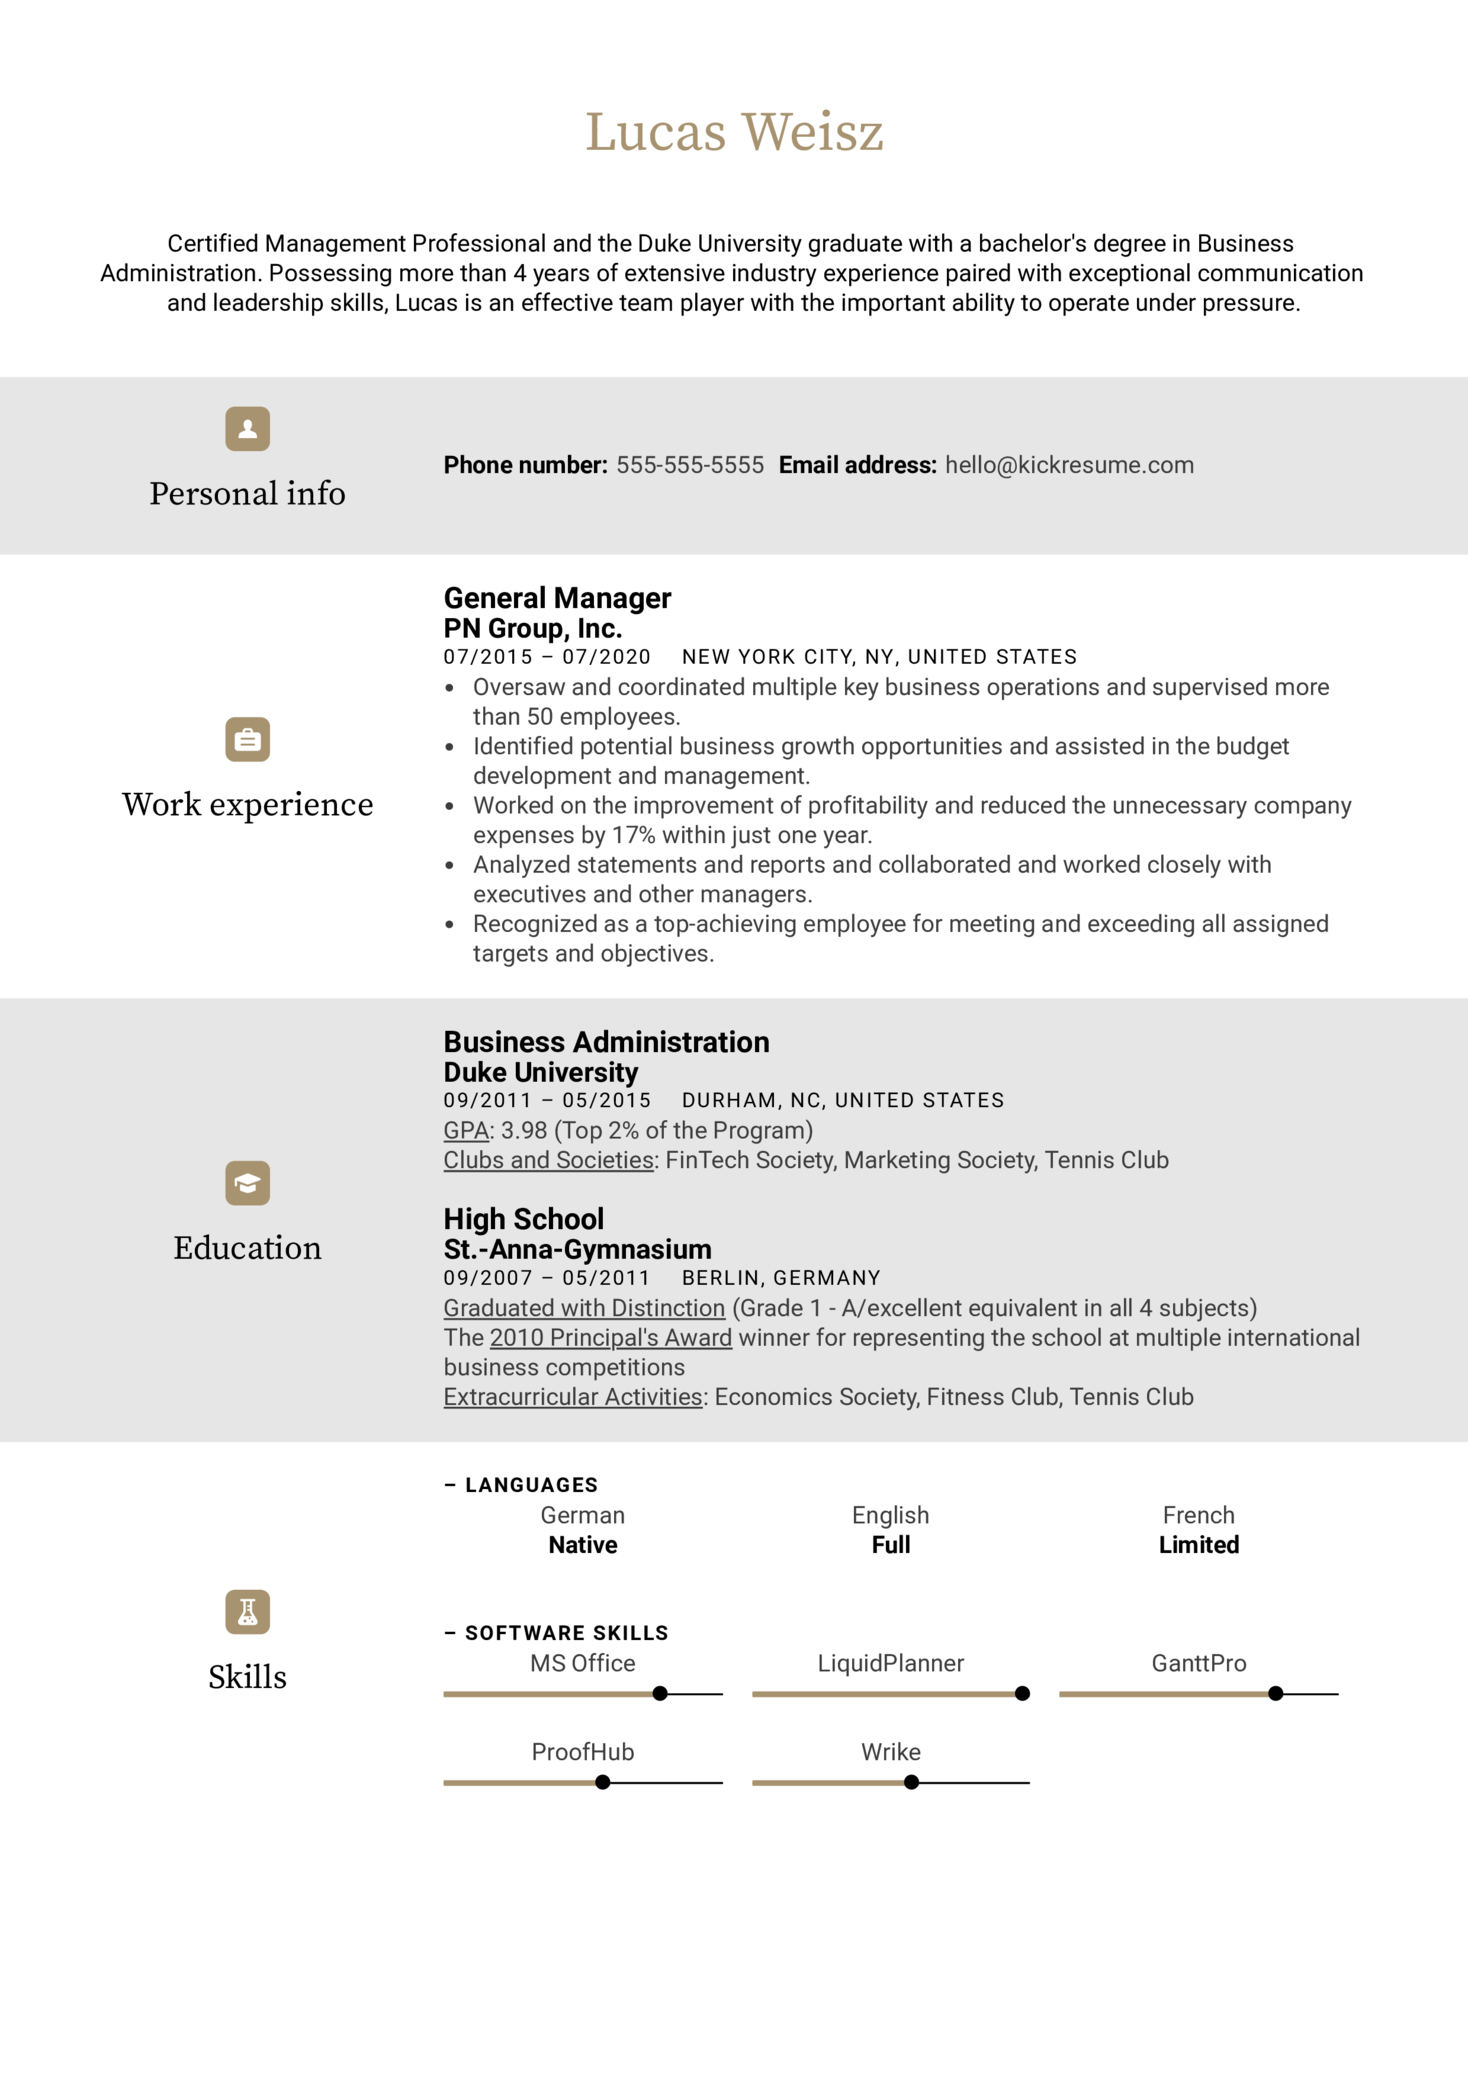 Professional General Manager Resume Example (Part 1)